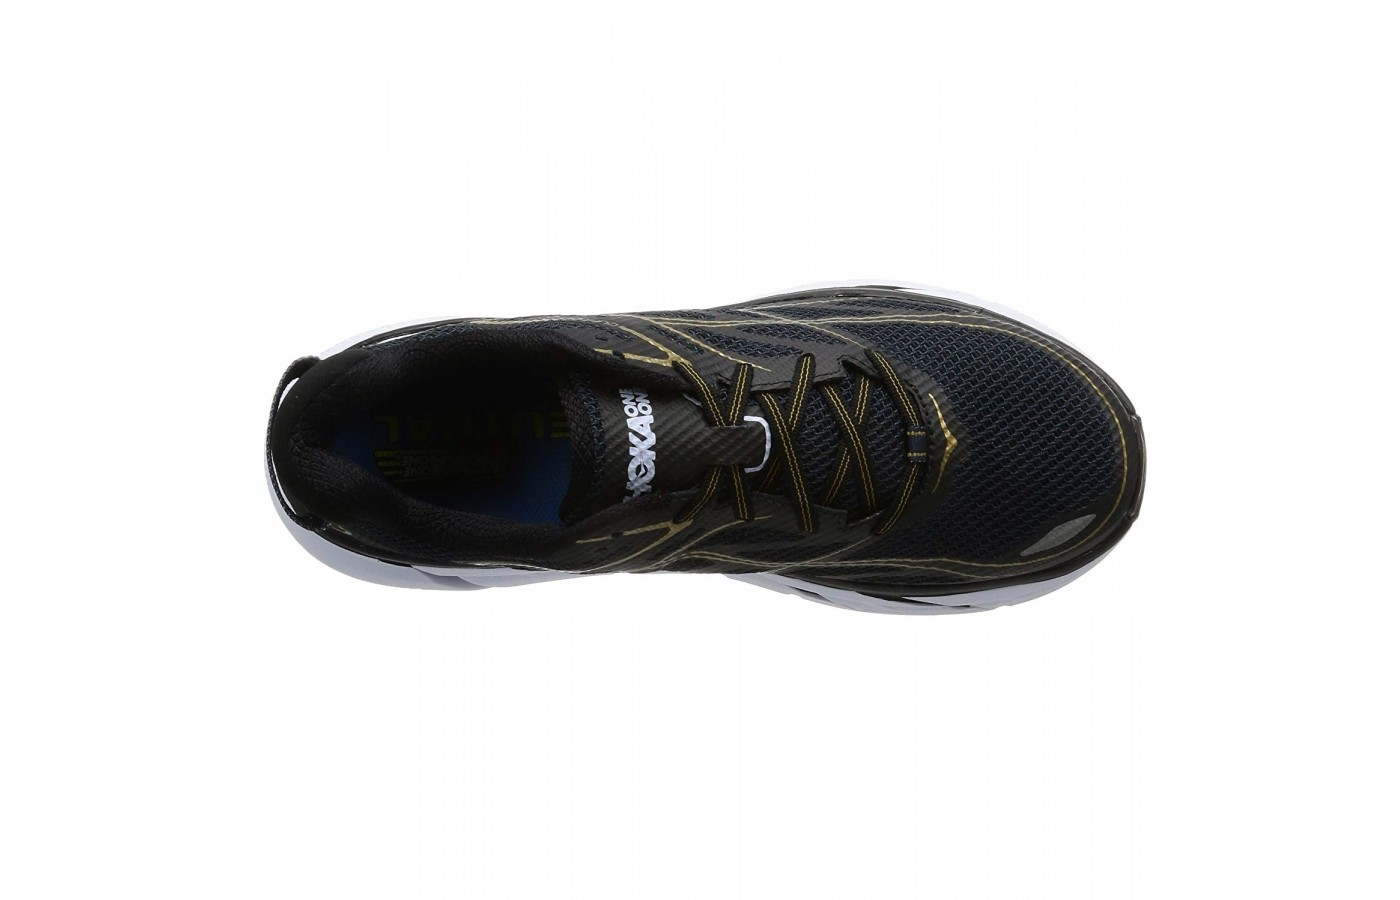 The Hoka Clifton 3 offers breathable mesh and synthetic uppers for better breathability